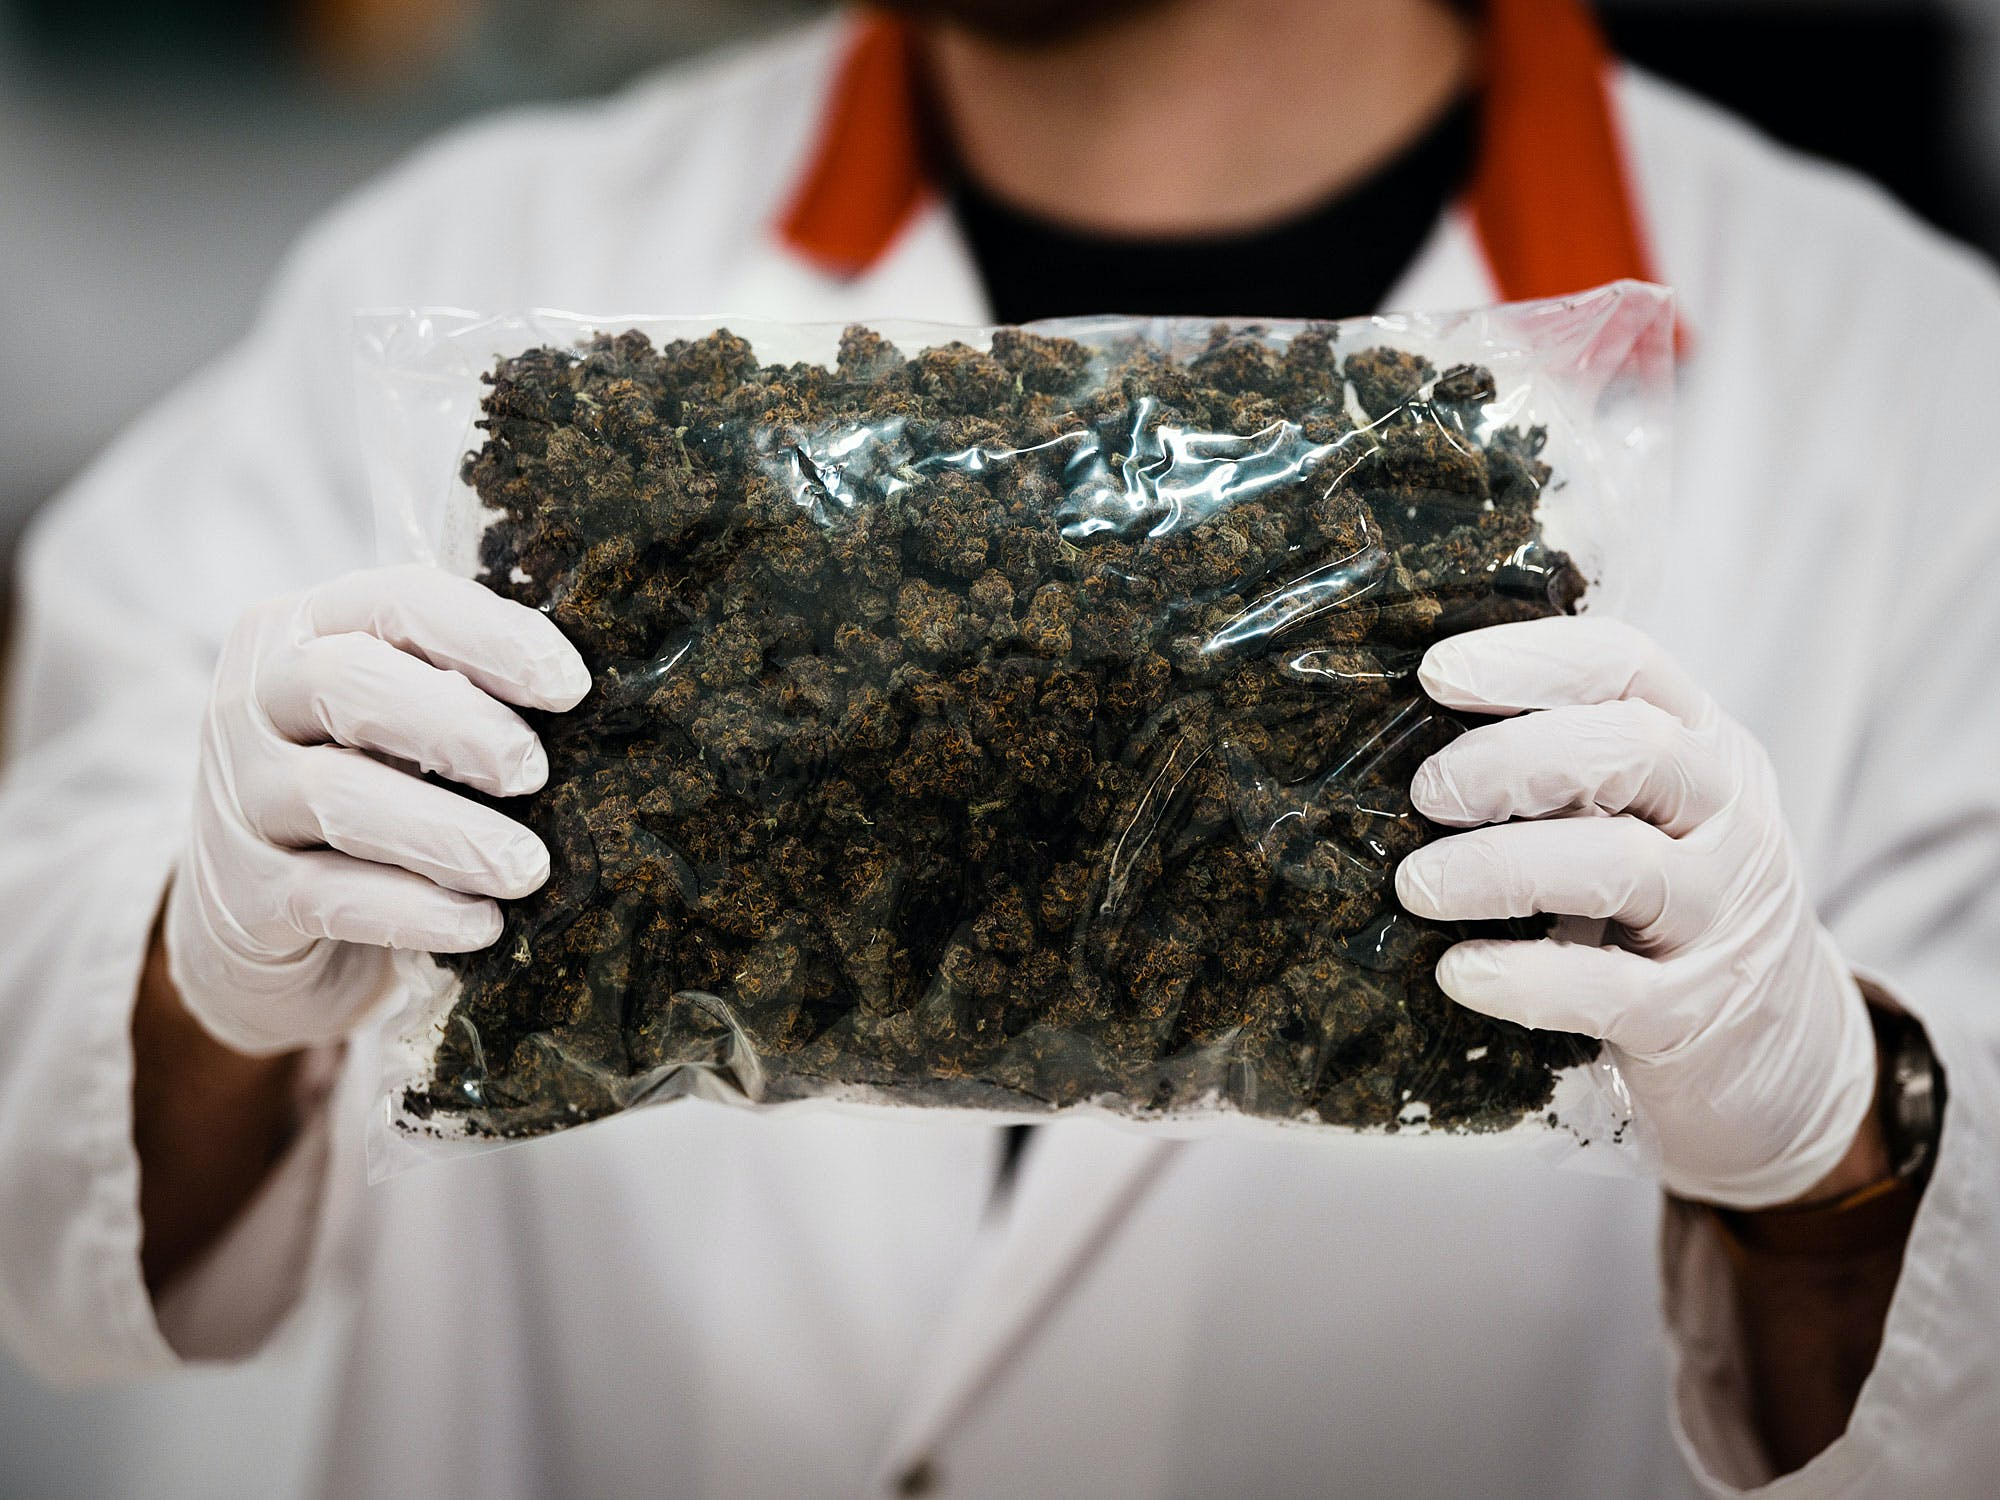 An employee at Green Relief holds up a bag of cannabis at the Green Relief laboratories in Hamilton, Ontario. Canada doesn't have enough weed for legalization day—even though it's just around the corner.